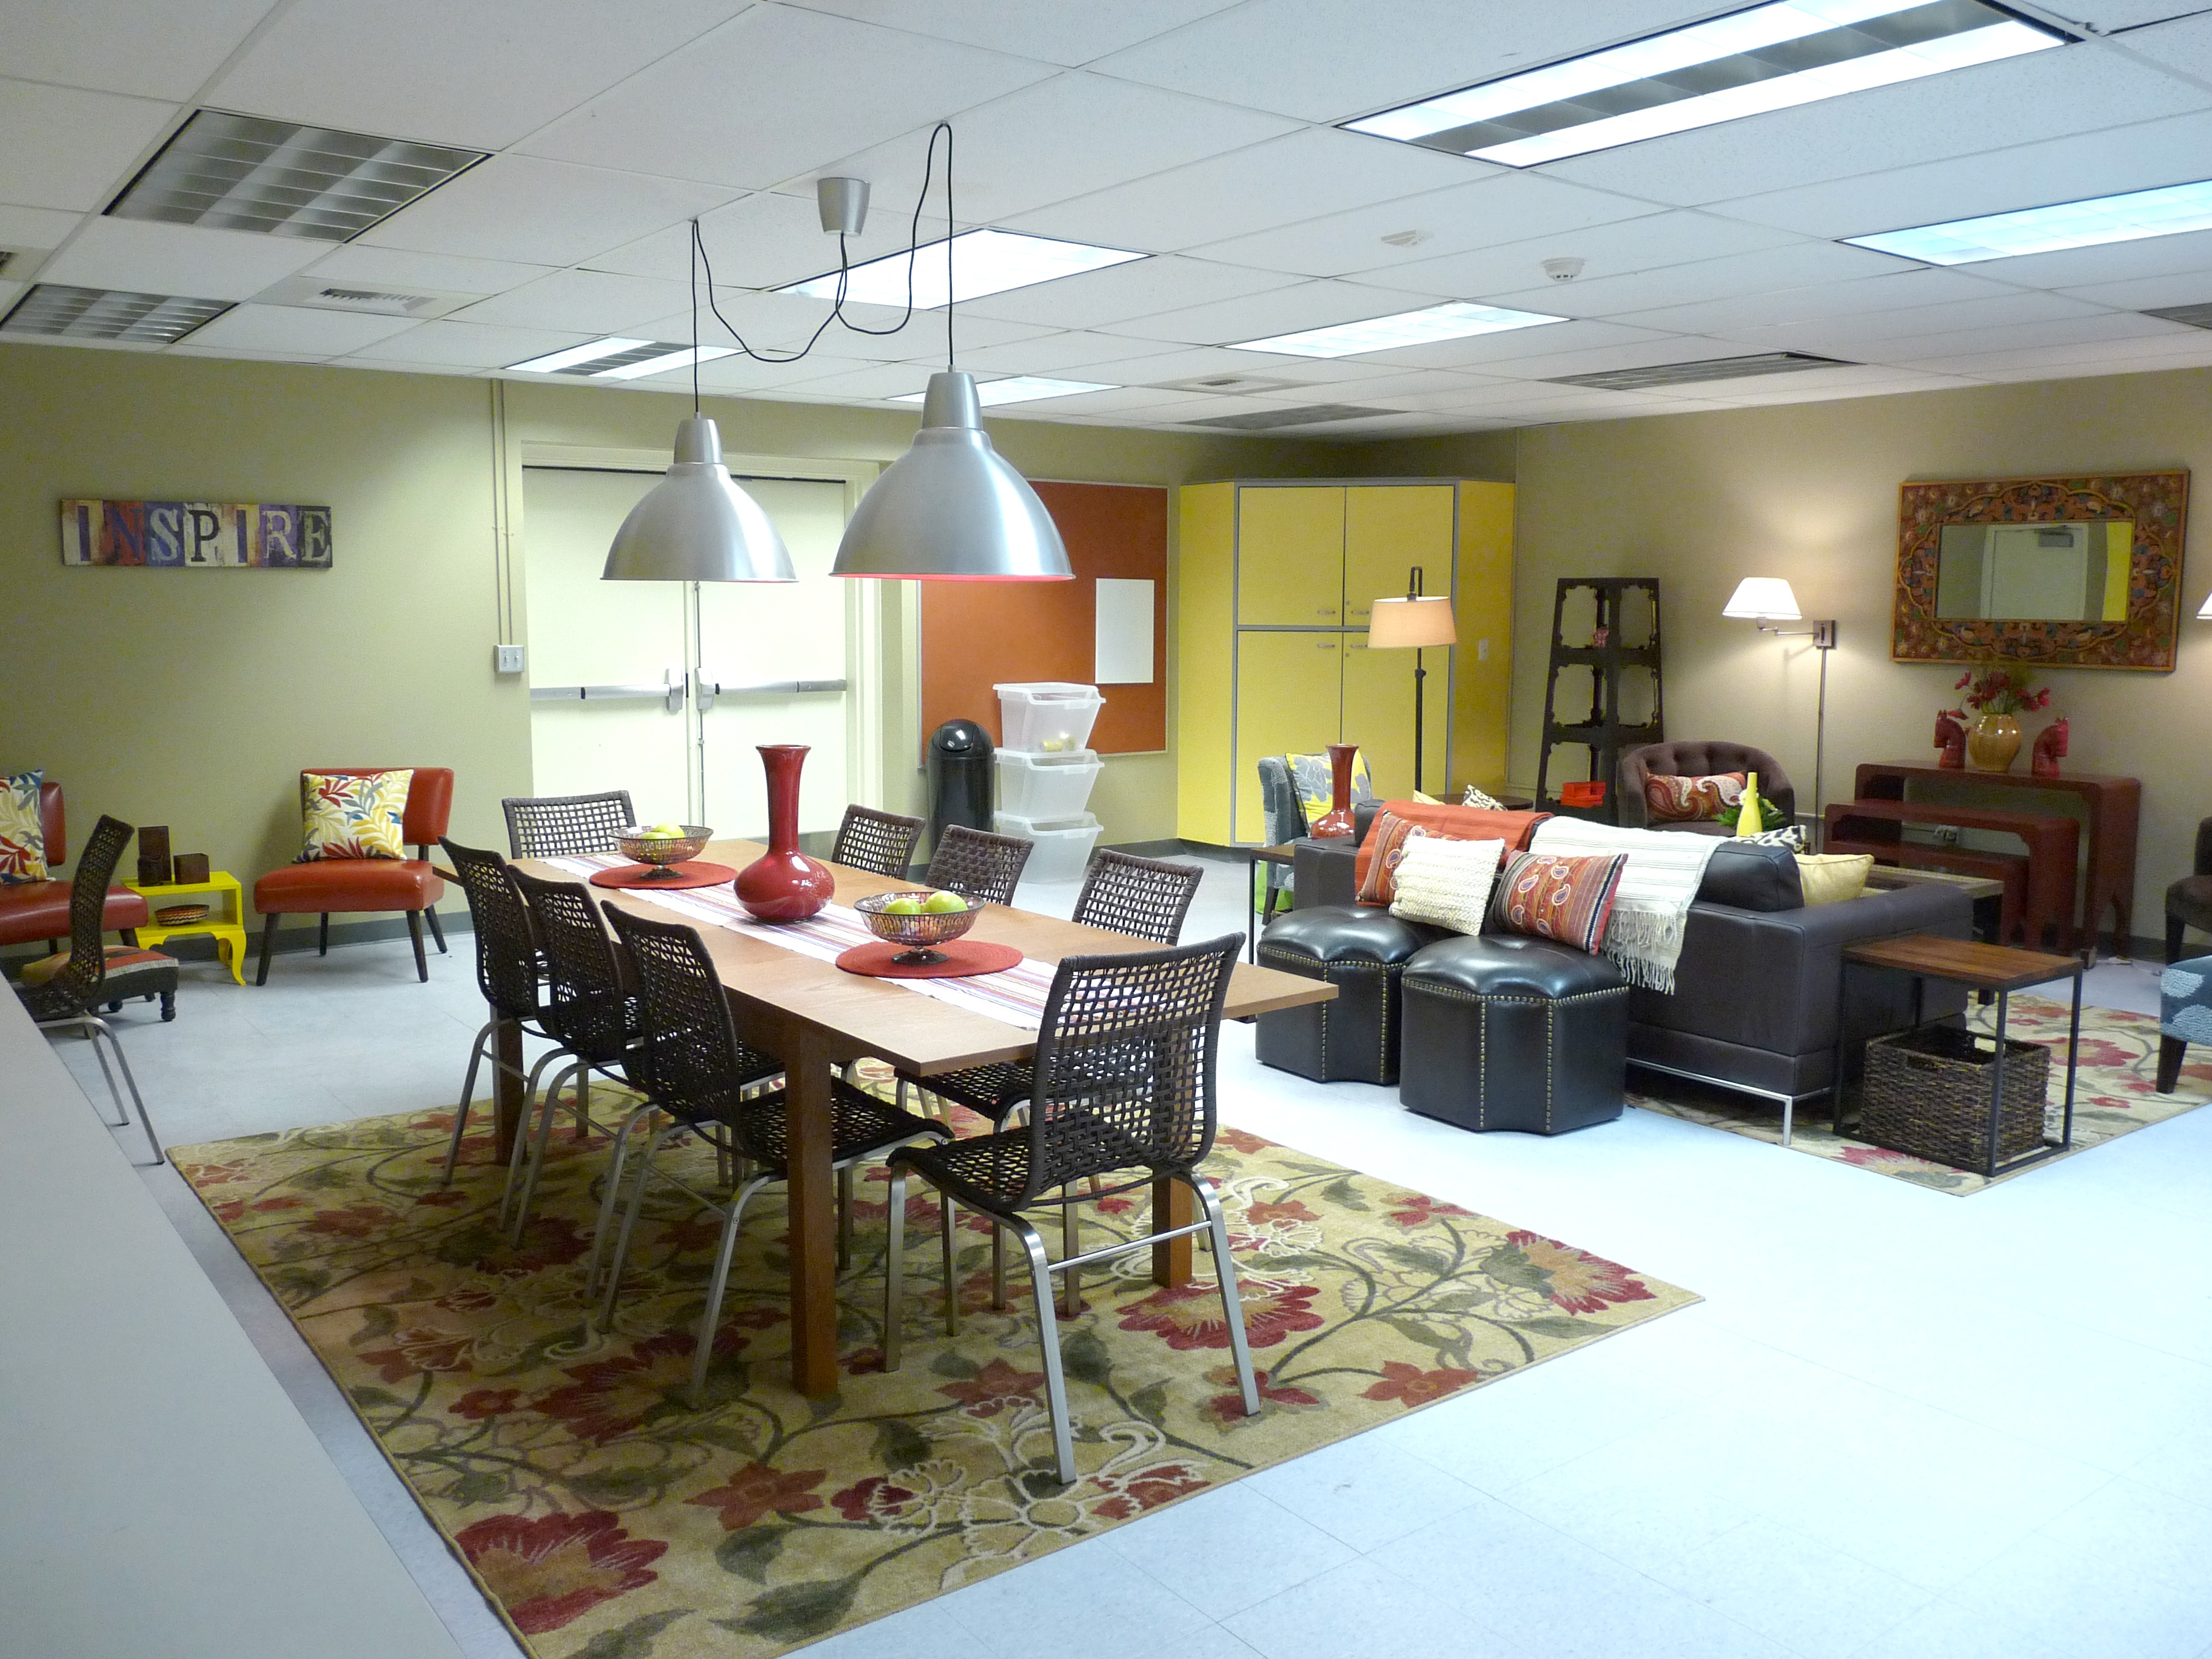 Room Interior Ideas File After Teacher S Lounge Jpg Wikimedia Commons